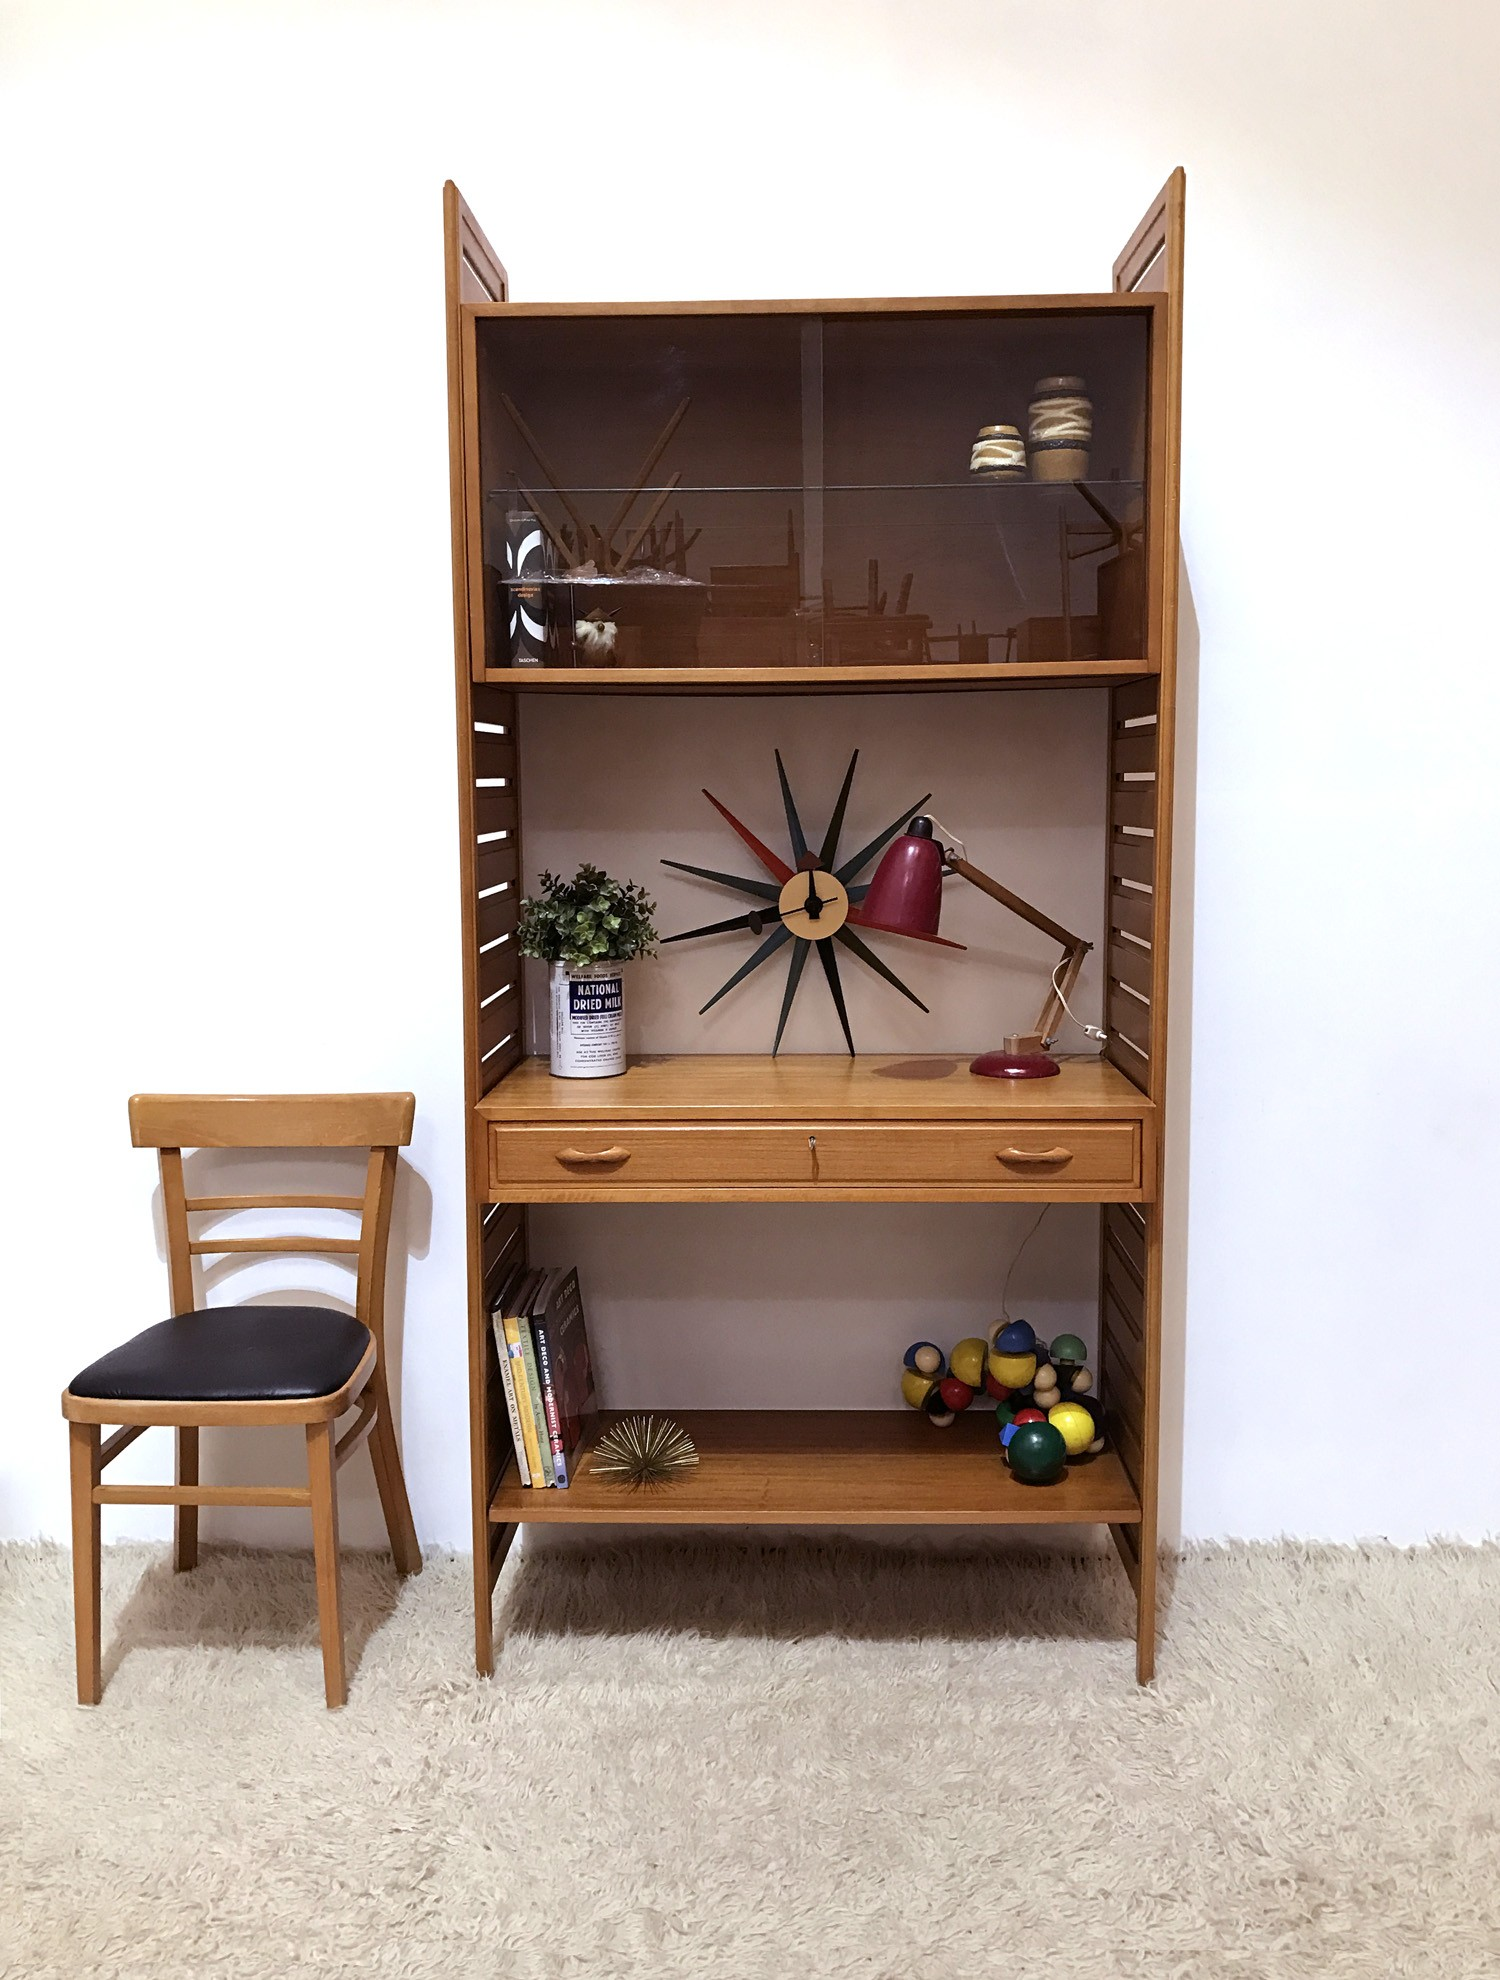 Modular Staples wall shelving system in teak - 1960s